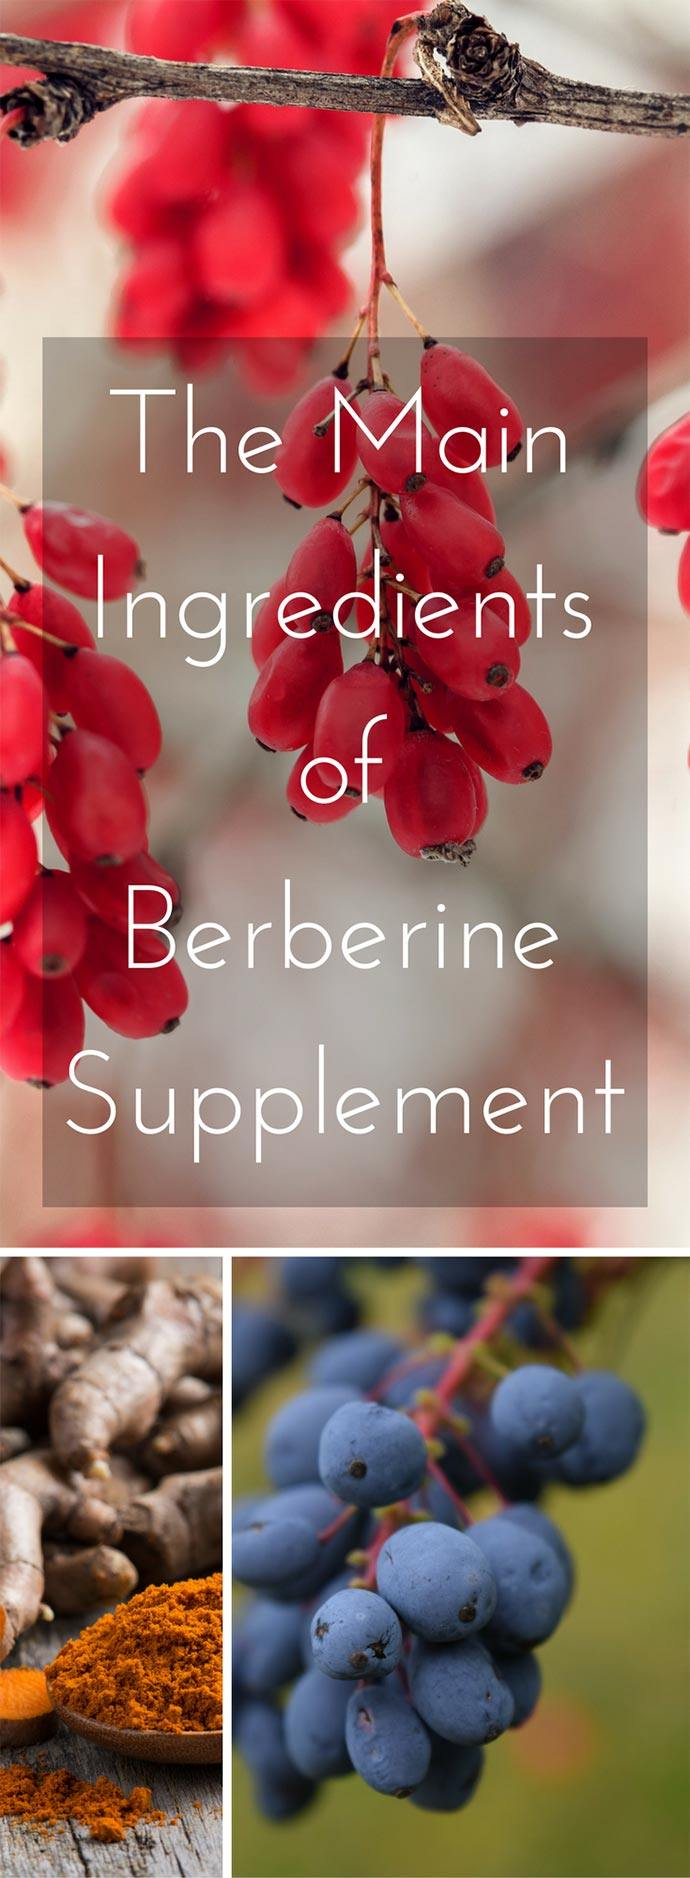 main components of berberine supplement: barberry, Oregon grape, and turmeric tree